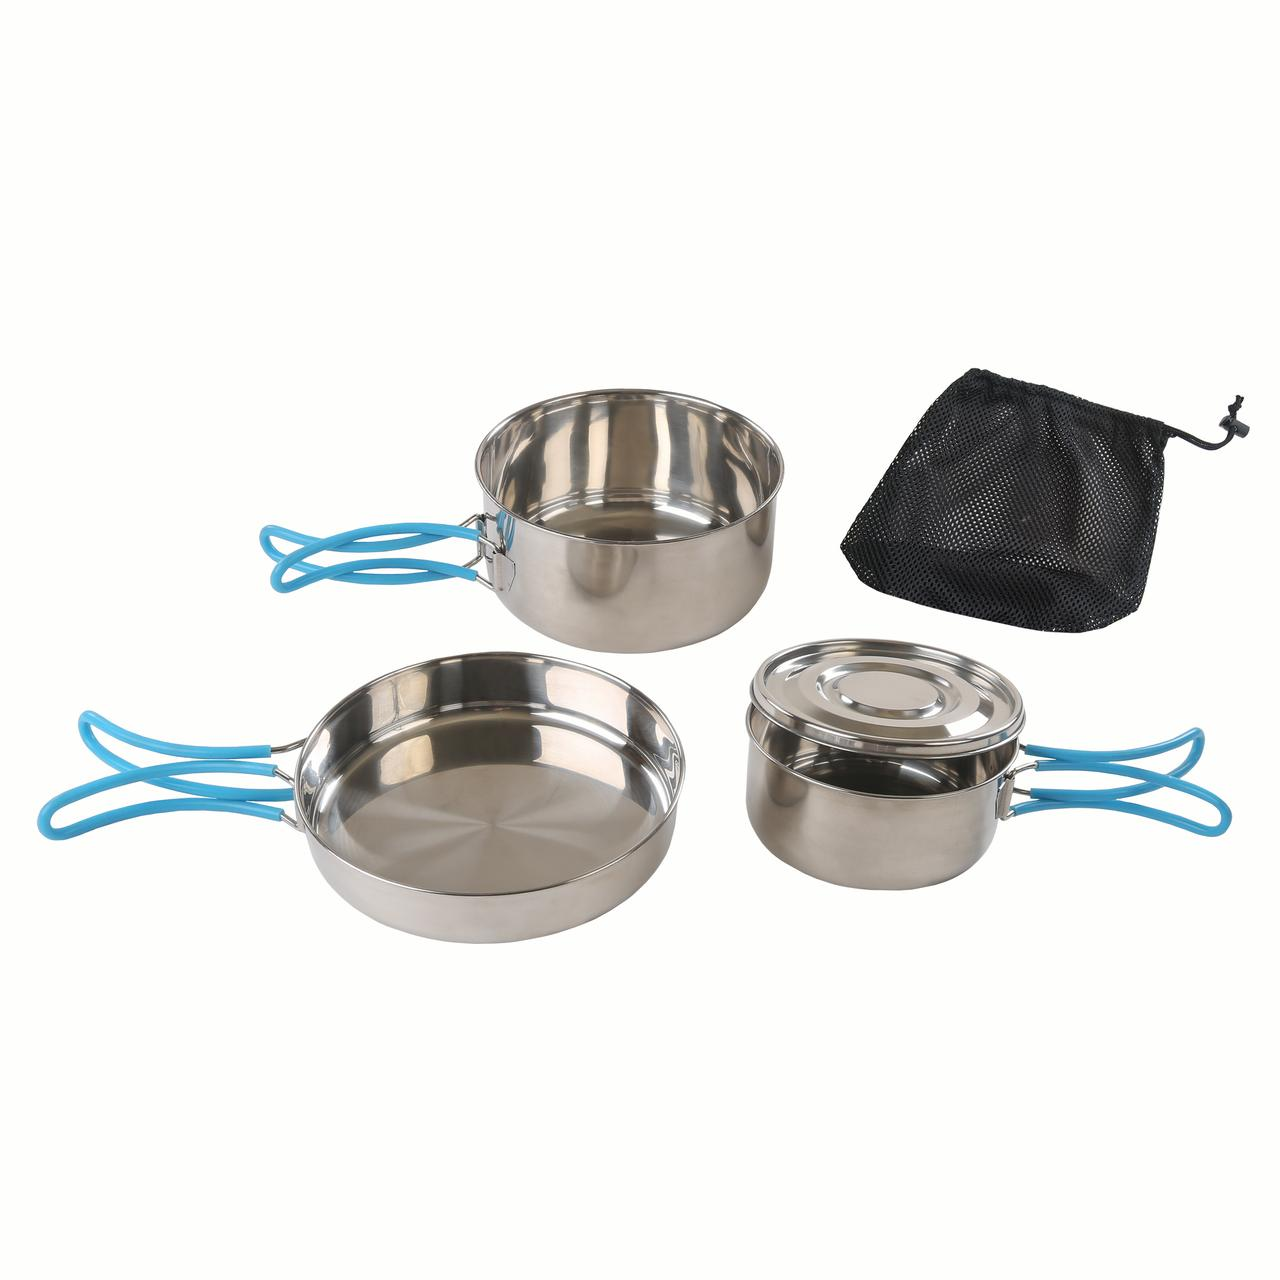 Stansport Stainless Steel Cook Set